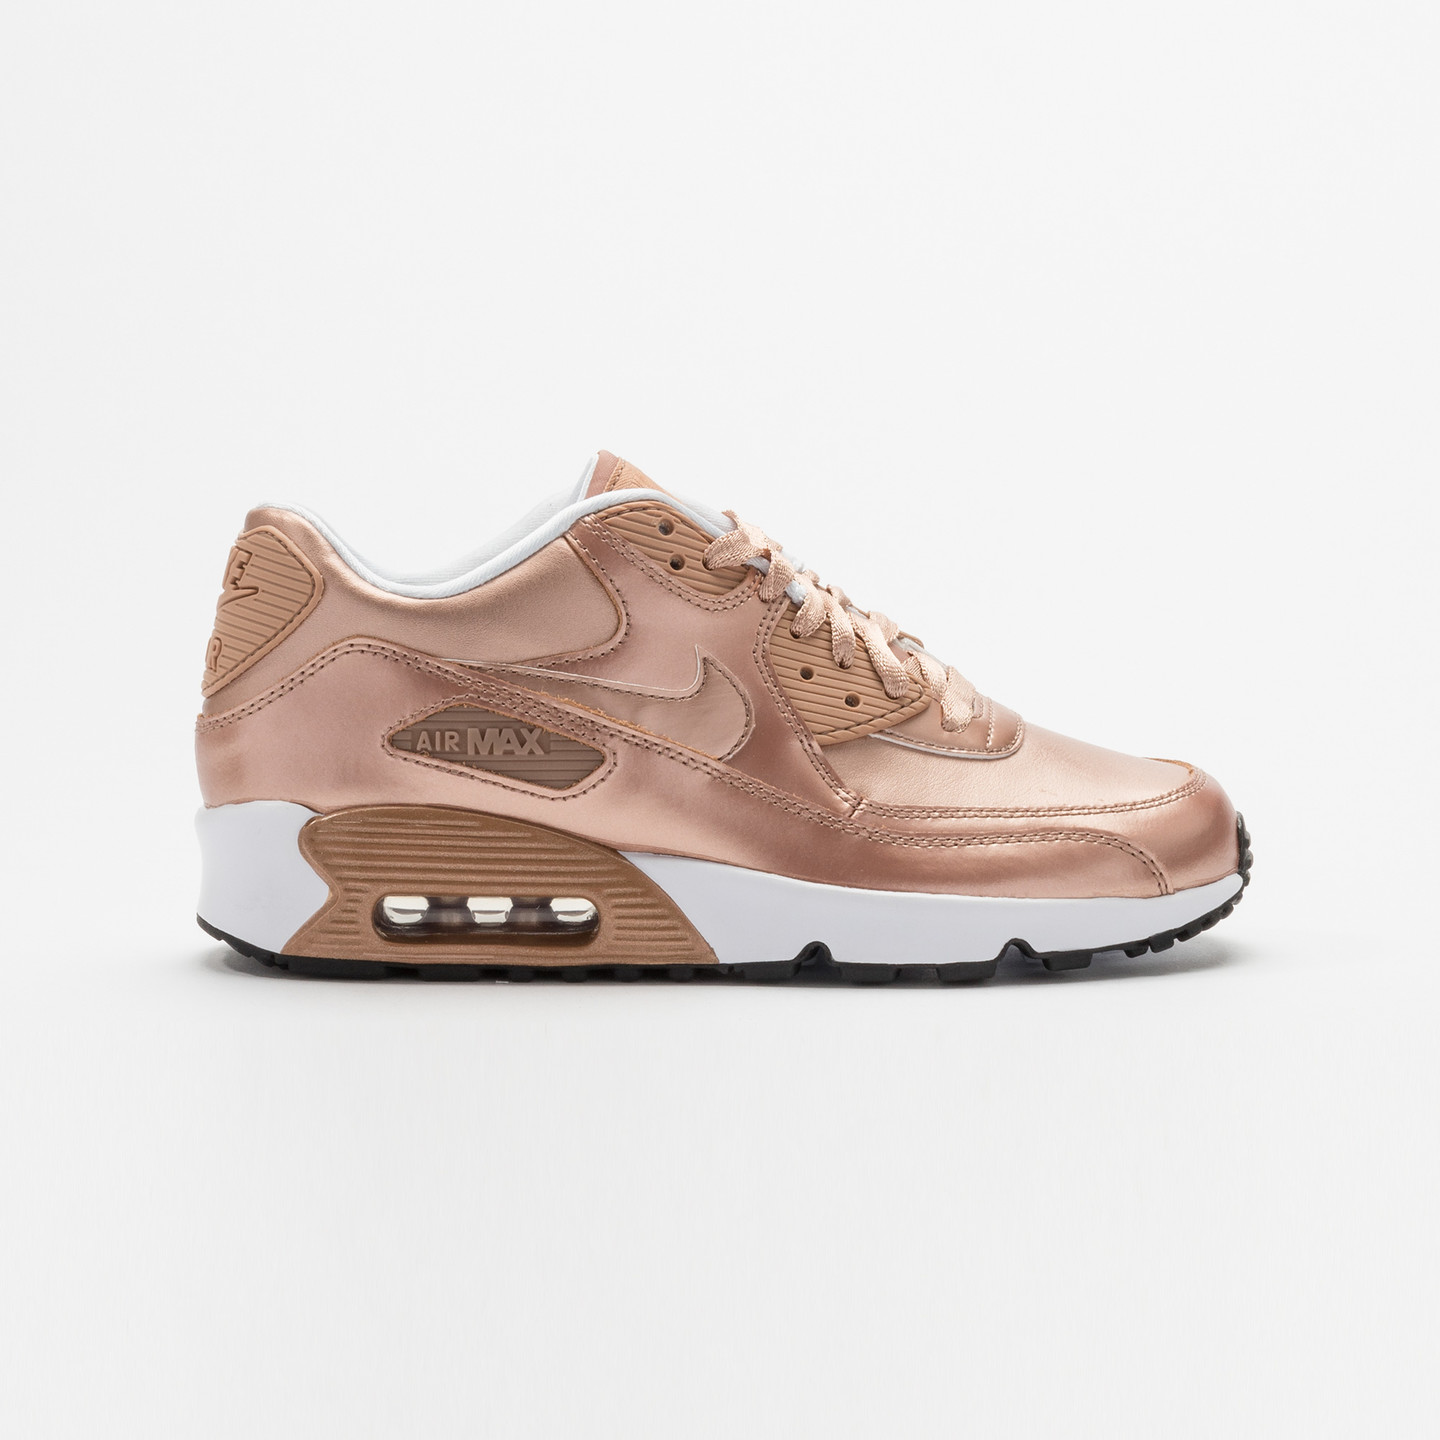 Nike Air Max 90 SE Leather (GS) Metallic Red Bronze 859633-900